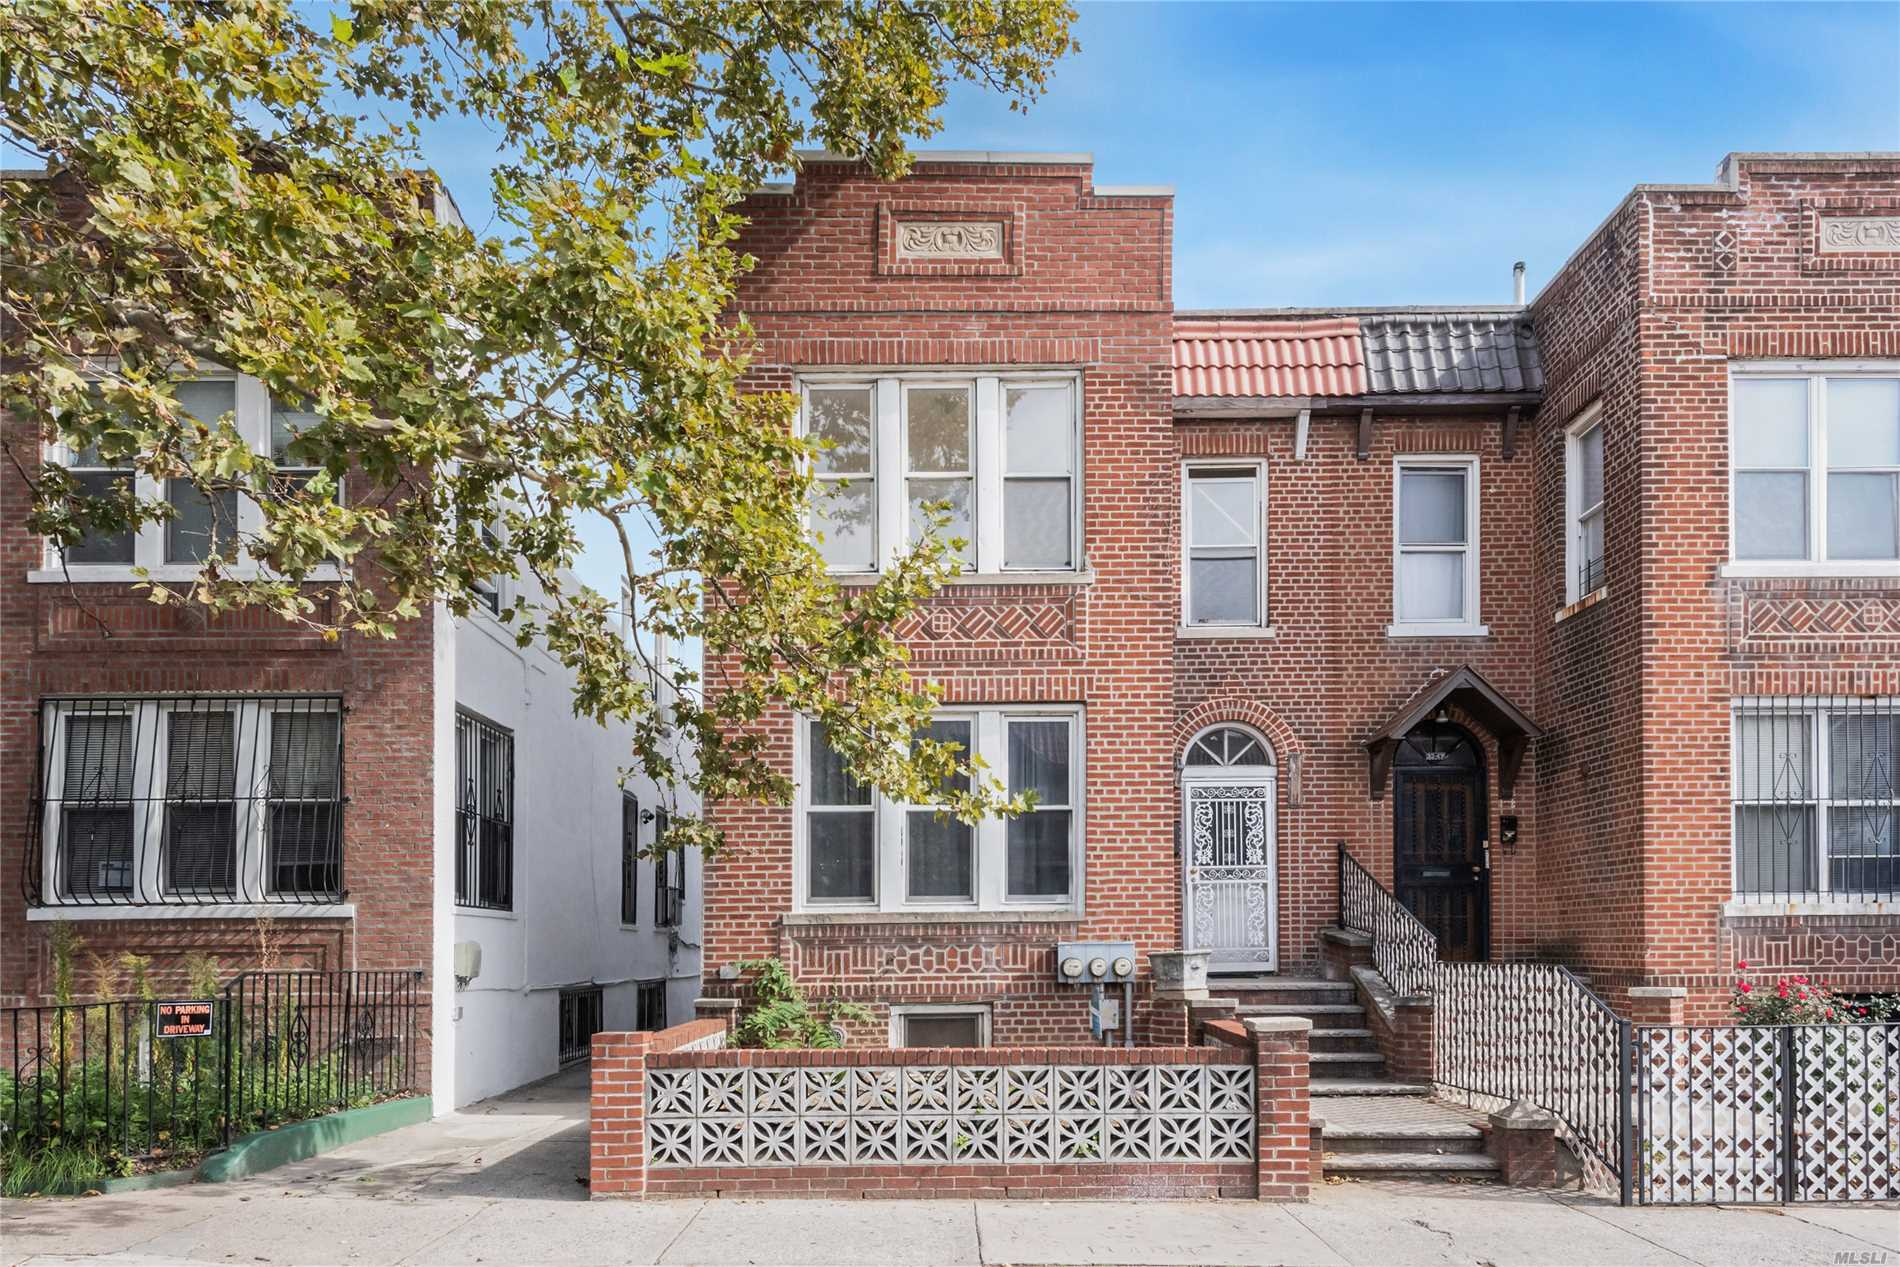 Prime Location Of Jackson Heights. Large 2 Family Home In Great Condition, Fully Finished Basement. Sun Drenched All Rooms With 2 Skylights, 2 Large Eat In Kitchens, Lots Of Closets, Whole House Freshly Painted. New Roof In A 2 Car Garage. Half A Block To Northern Blvd, Public Transportation, Restaurants, Shopping And More!!! Won't Last!